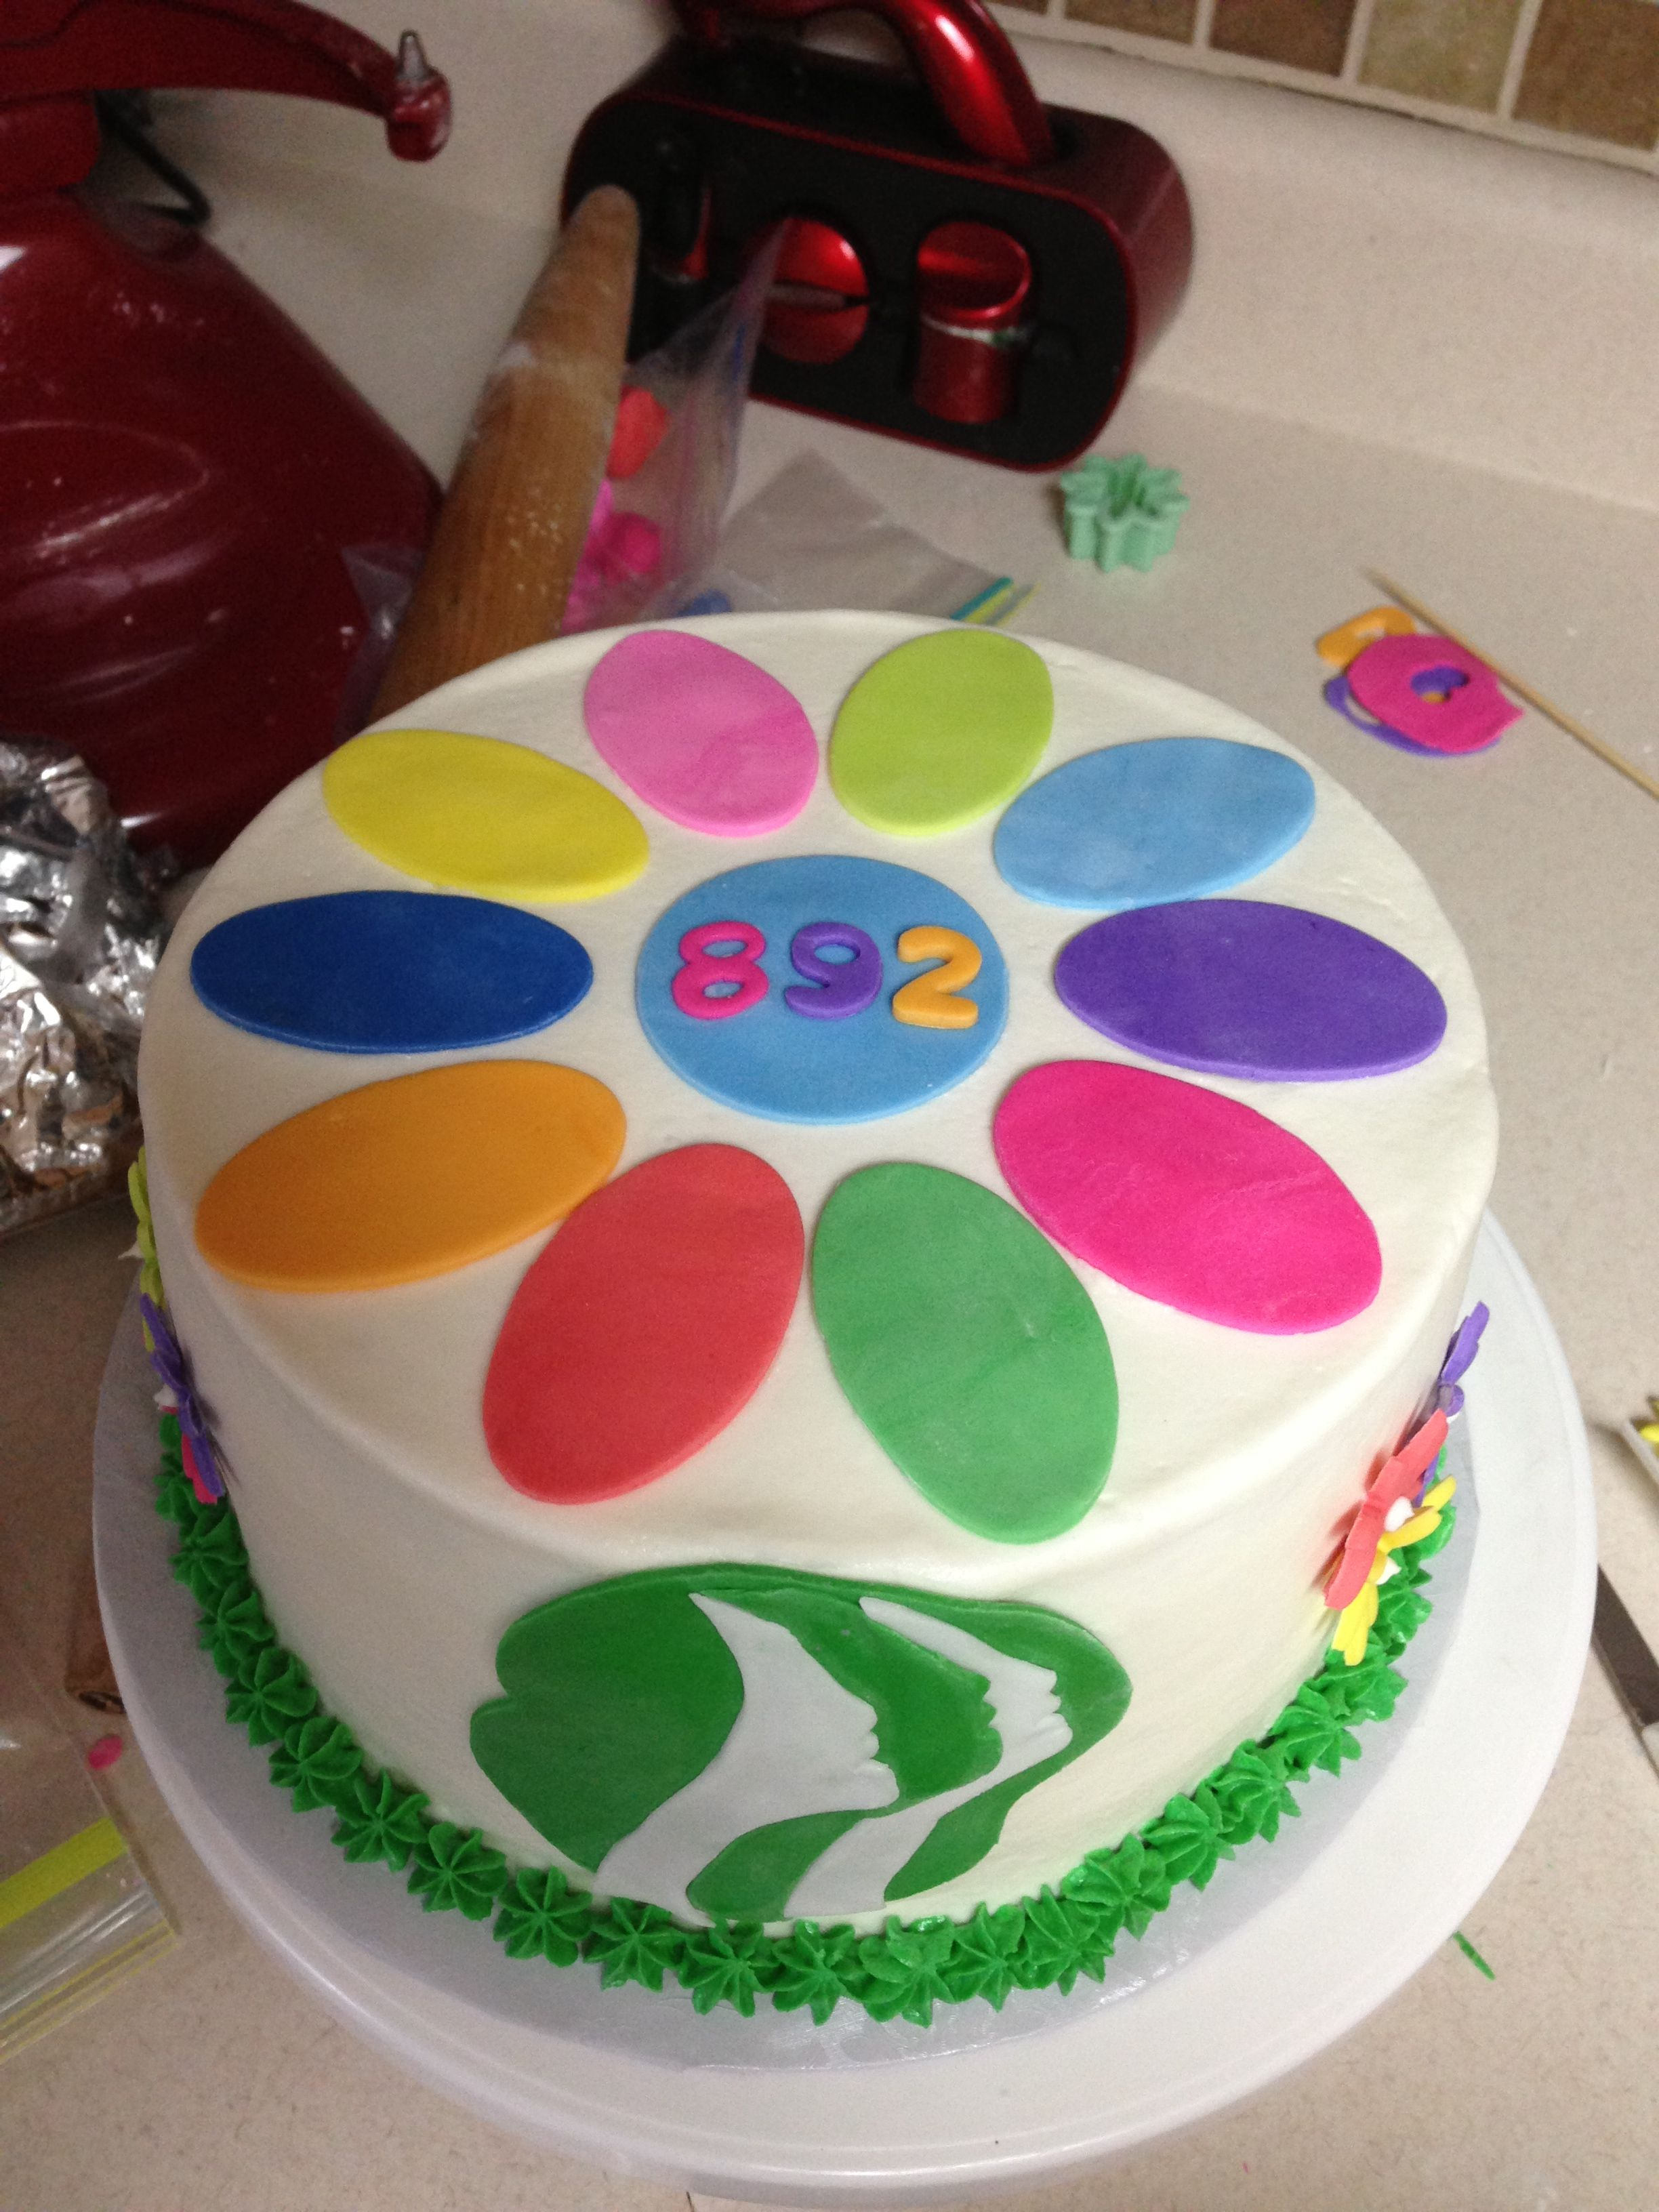 Cake Ideas For Girl Scouts : Girls Scout Cake Ideas 80867 Girl Scout Cake Party Ideas P